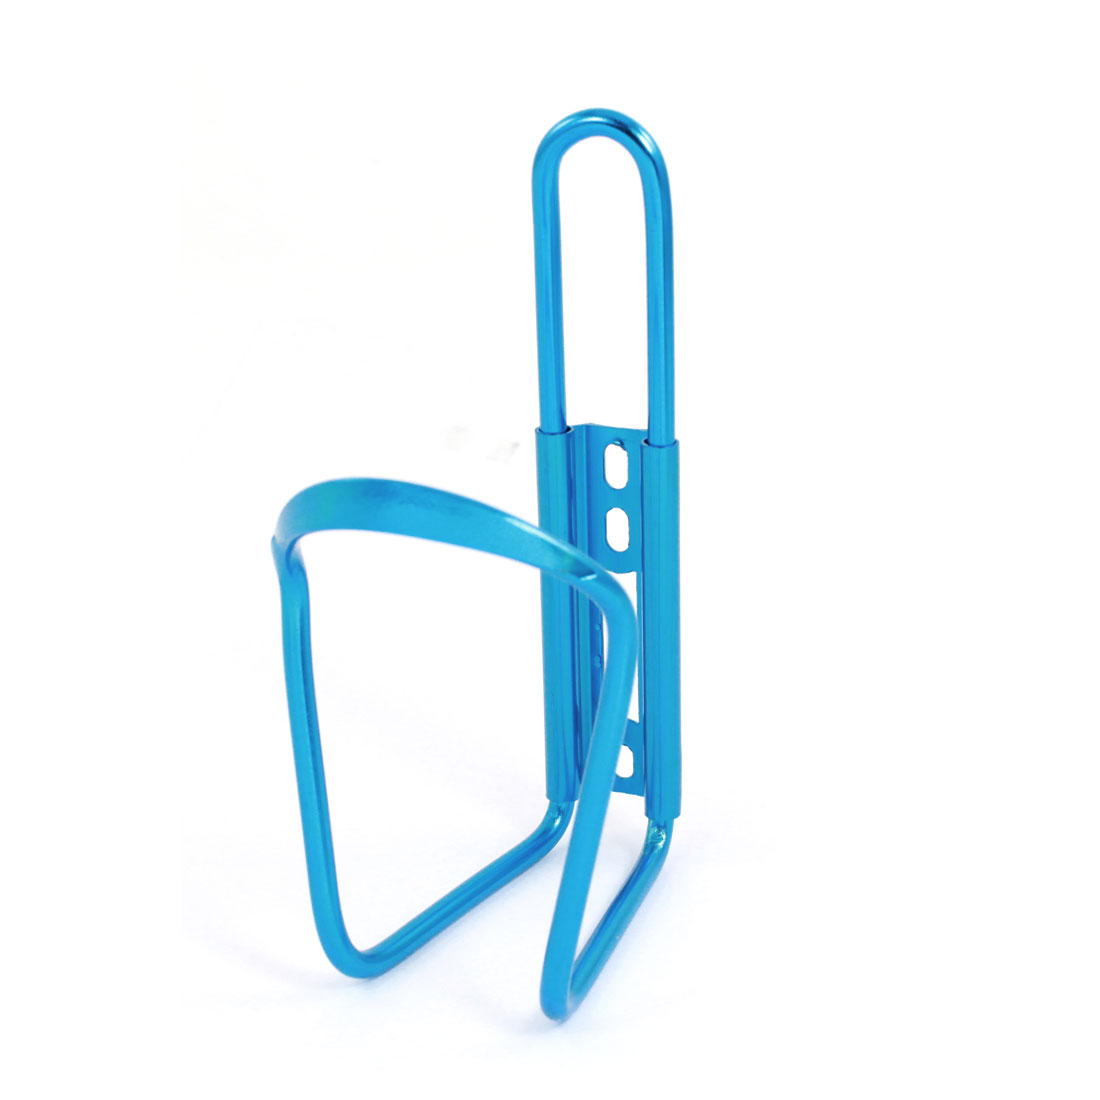 Sky Blue Aluminum Alloy Bottle Cage Bracket Holder for Bikes Cycling